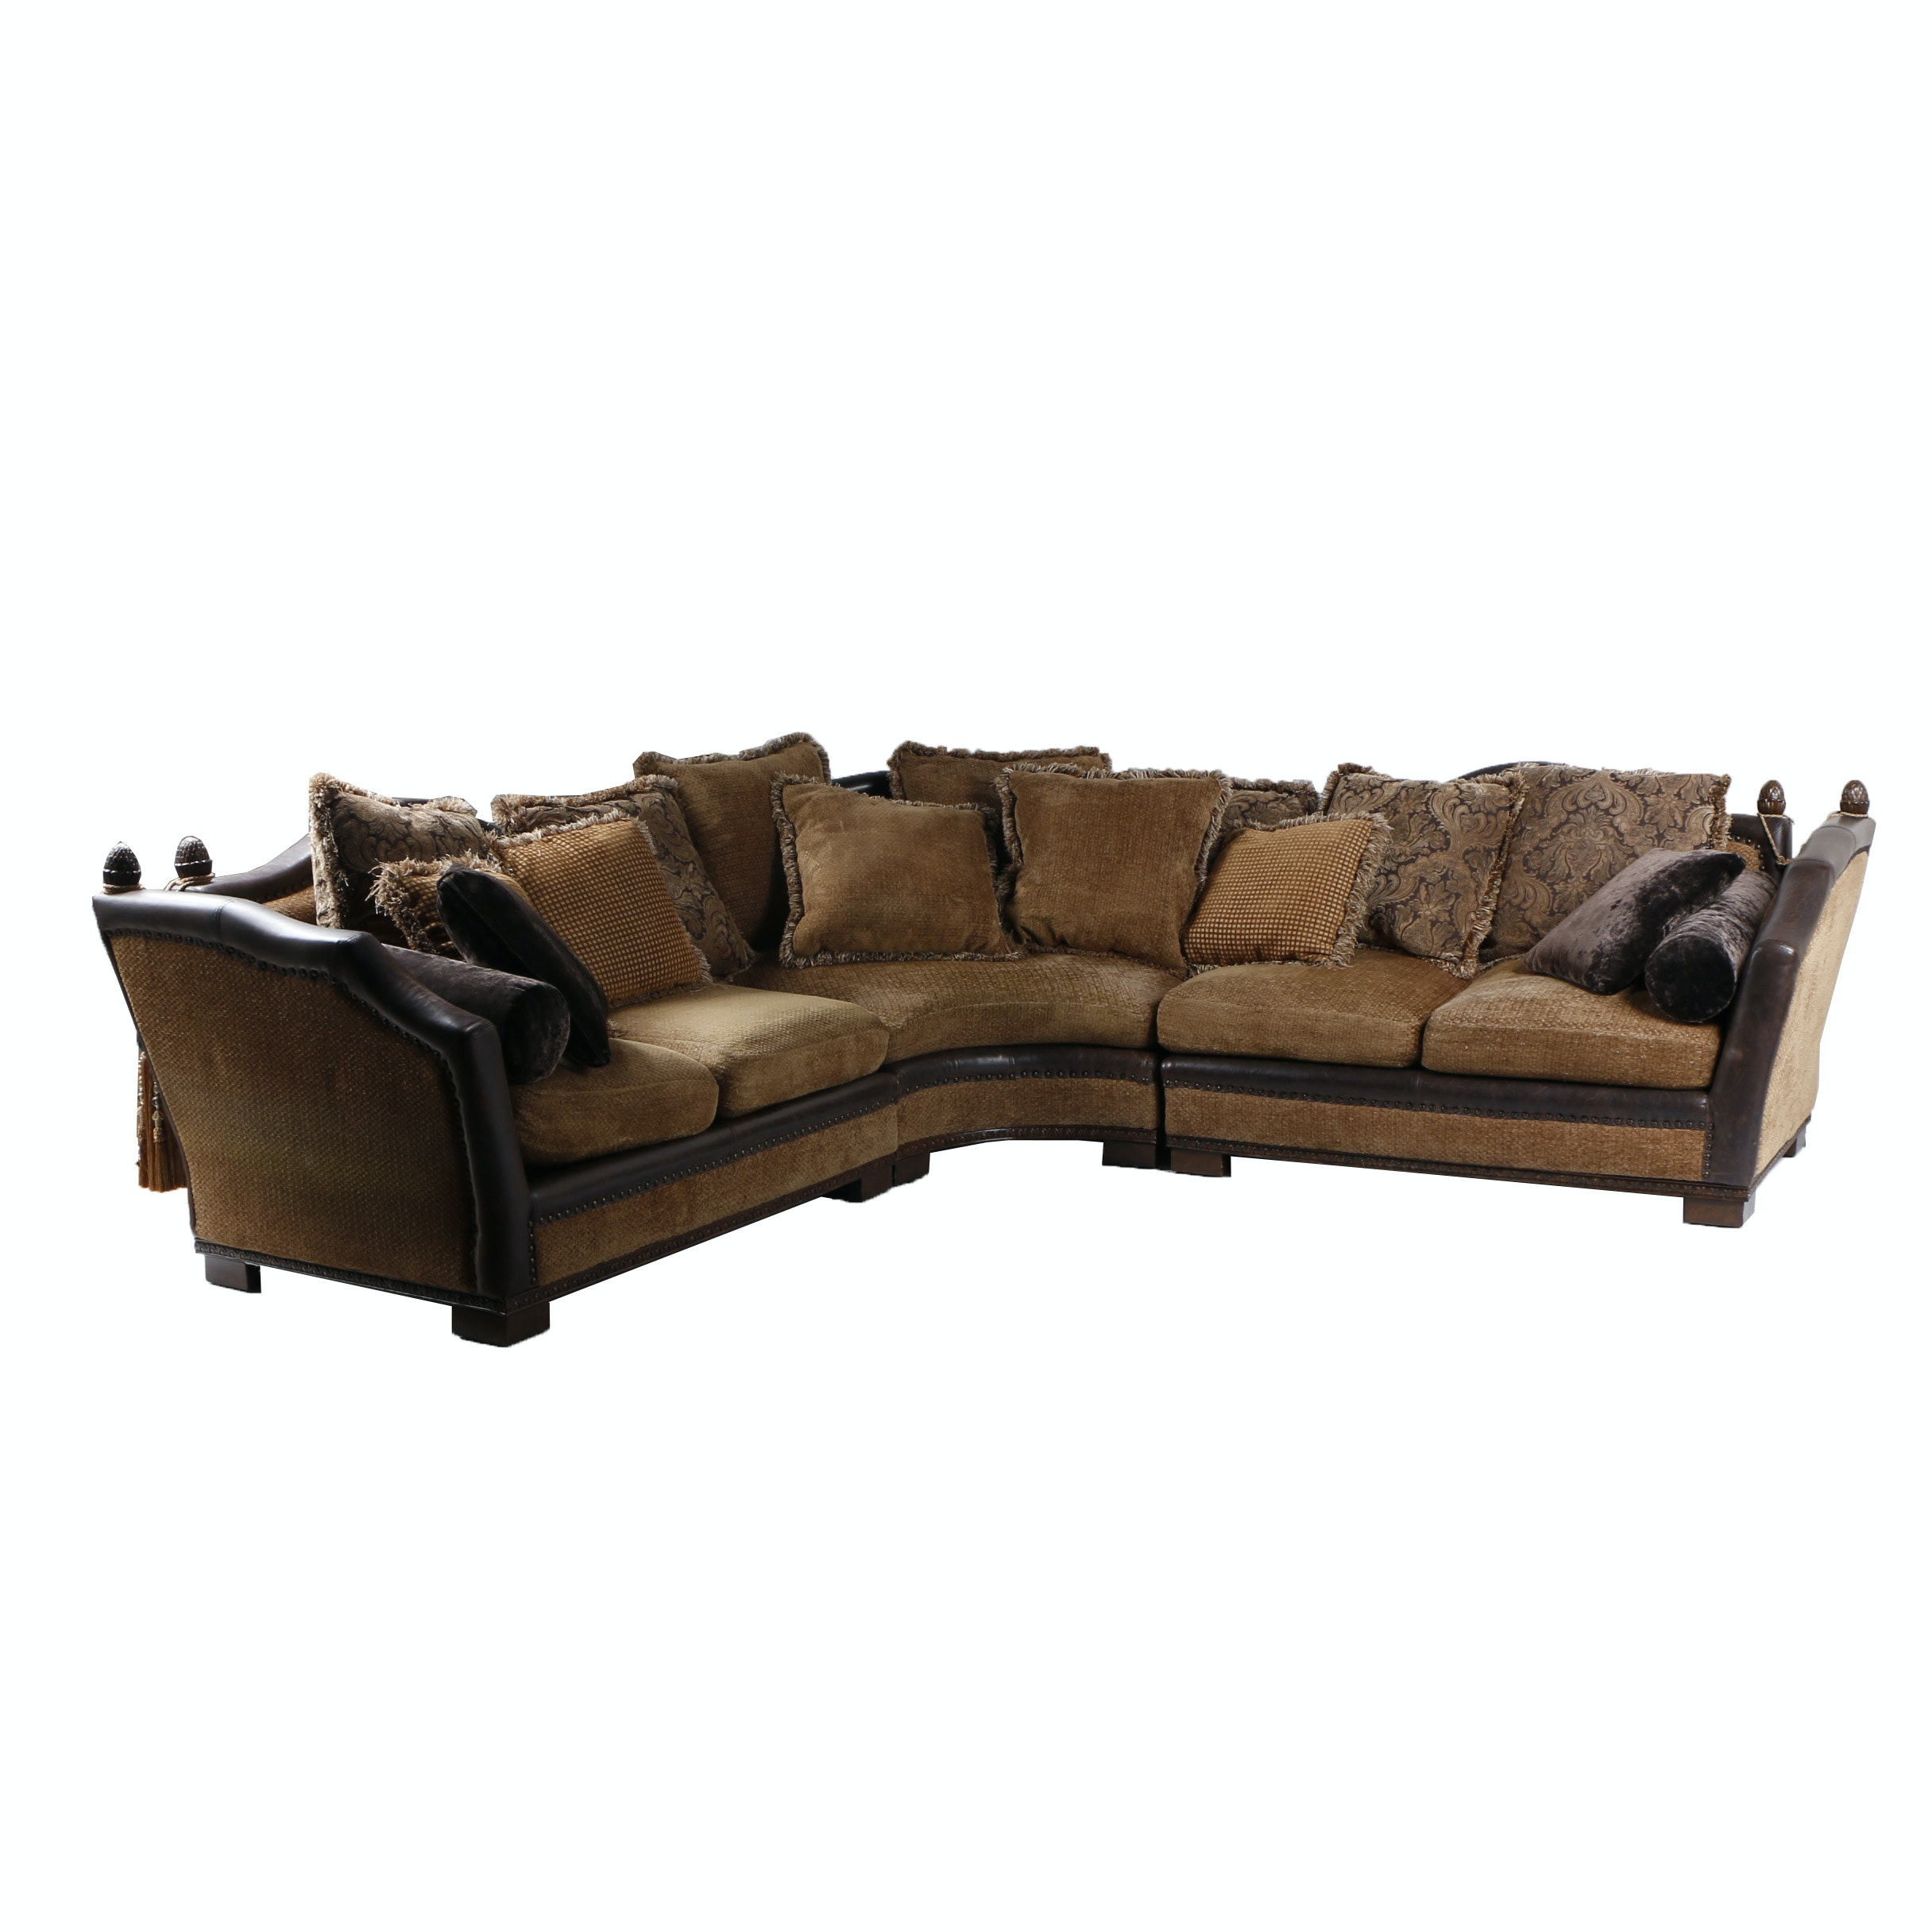 Contemporary Upholstered Three-Piece Sectional Sofa